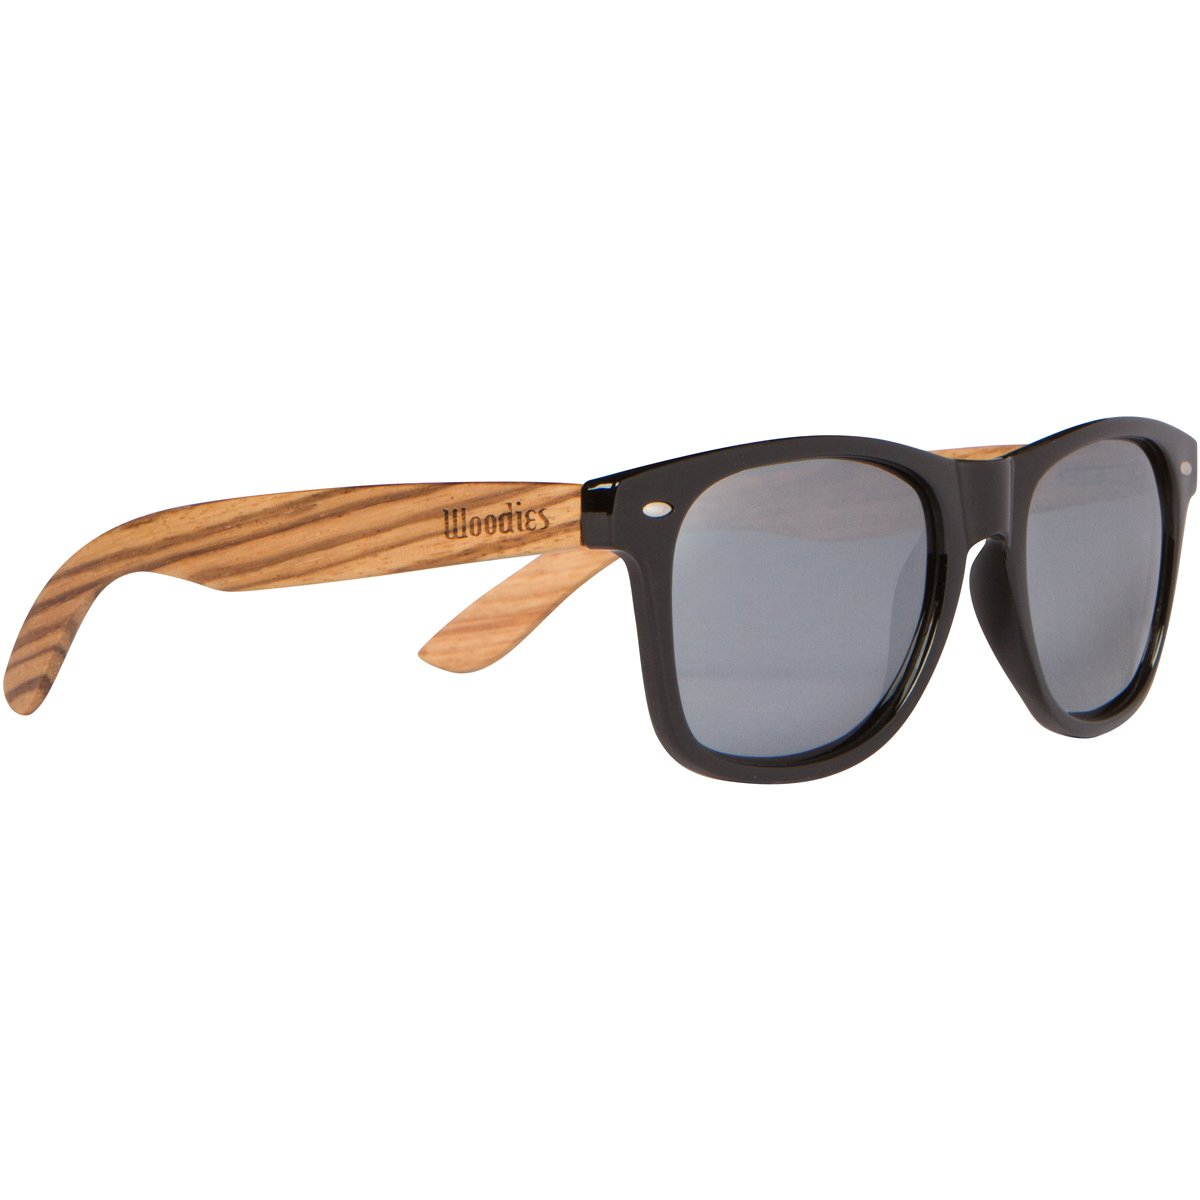 WOODIES Zebra Wood Sunglasses with Silver Mirror Polarized Lens